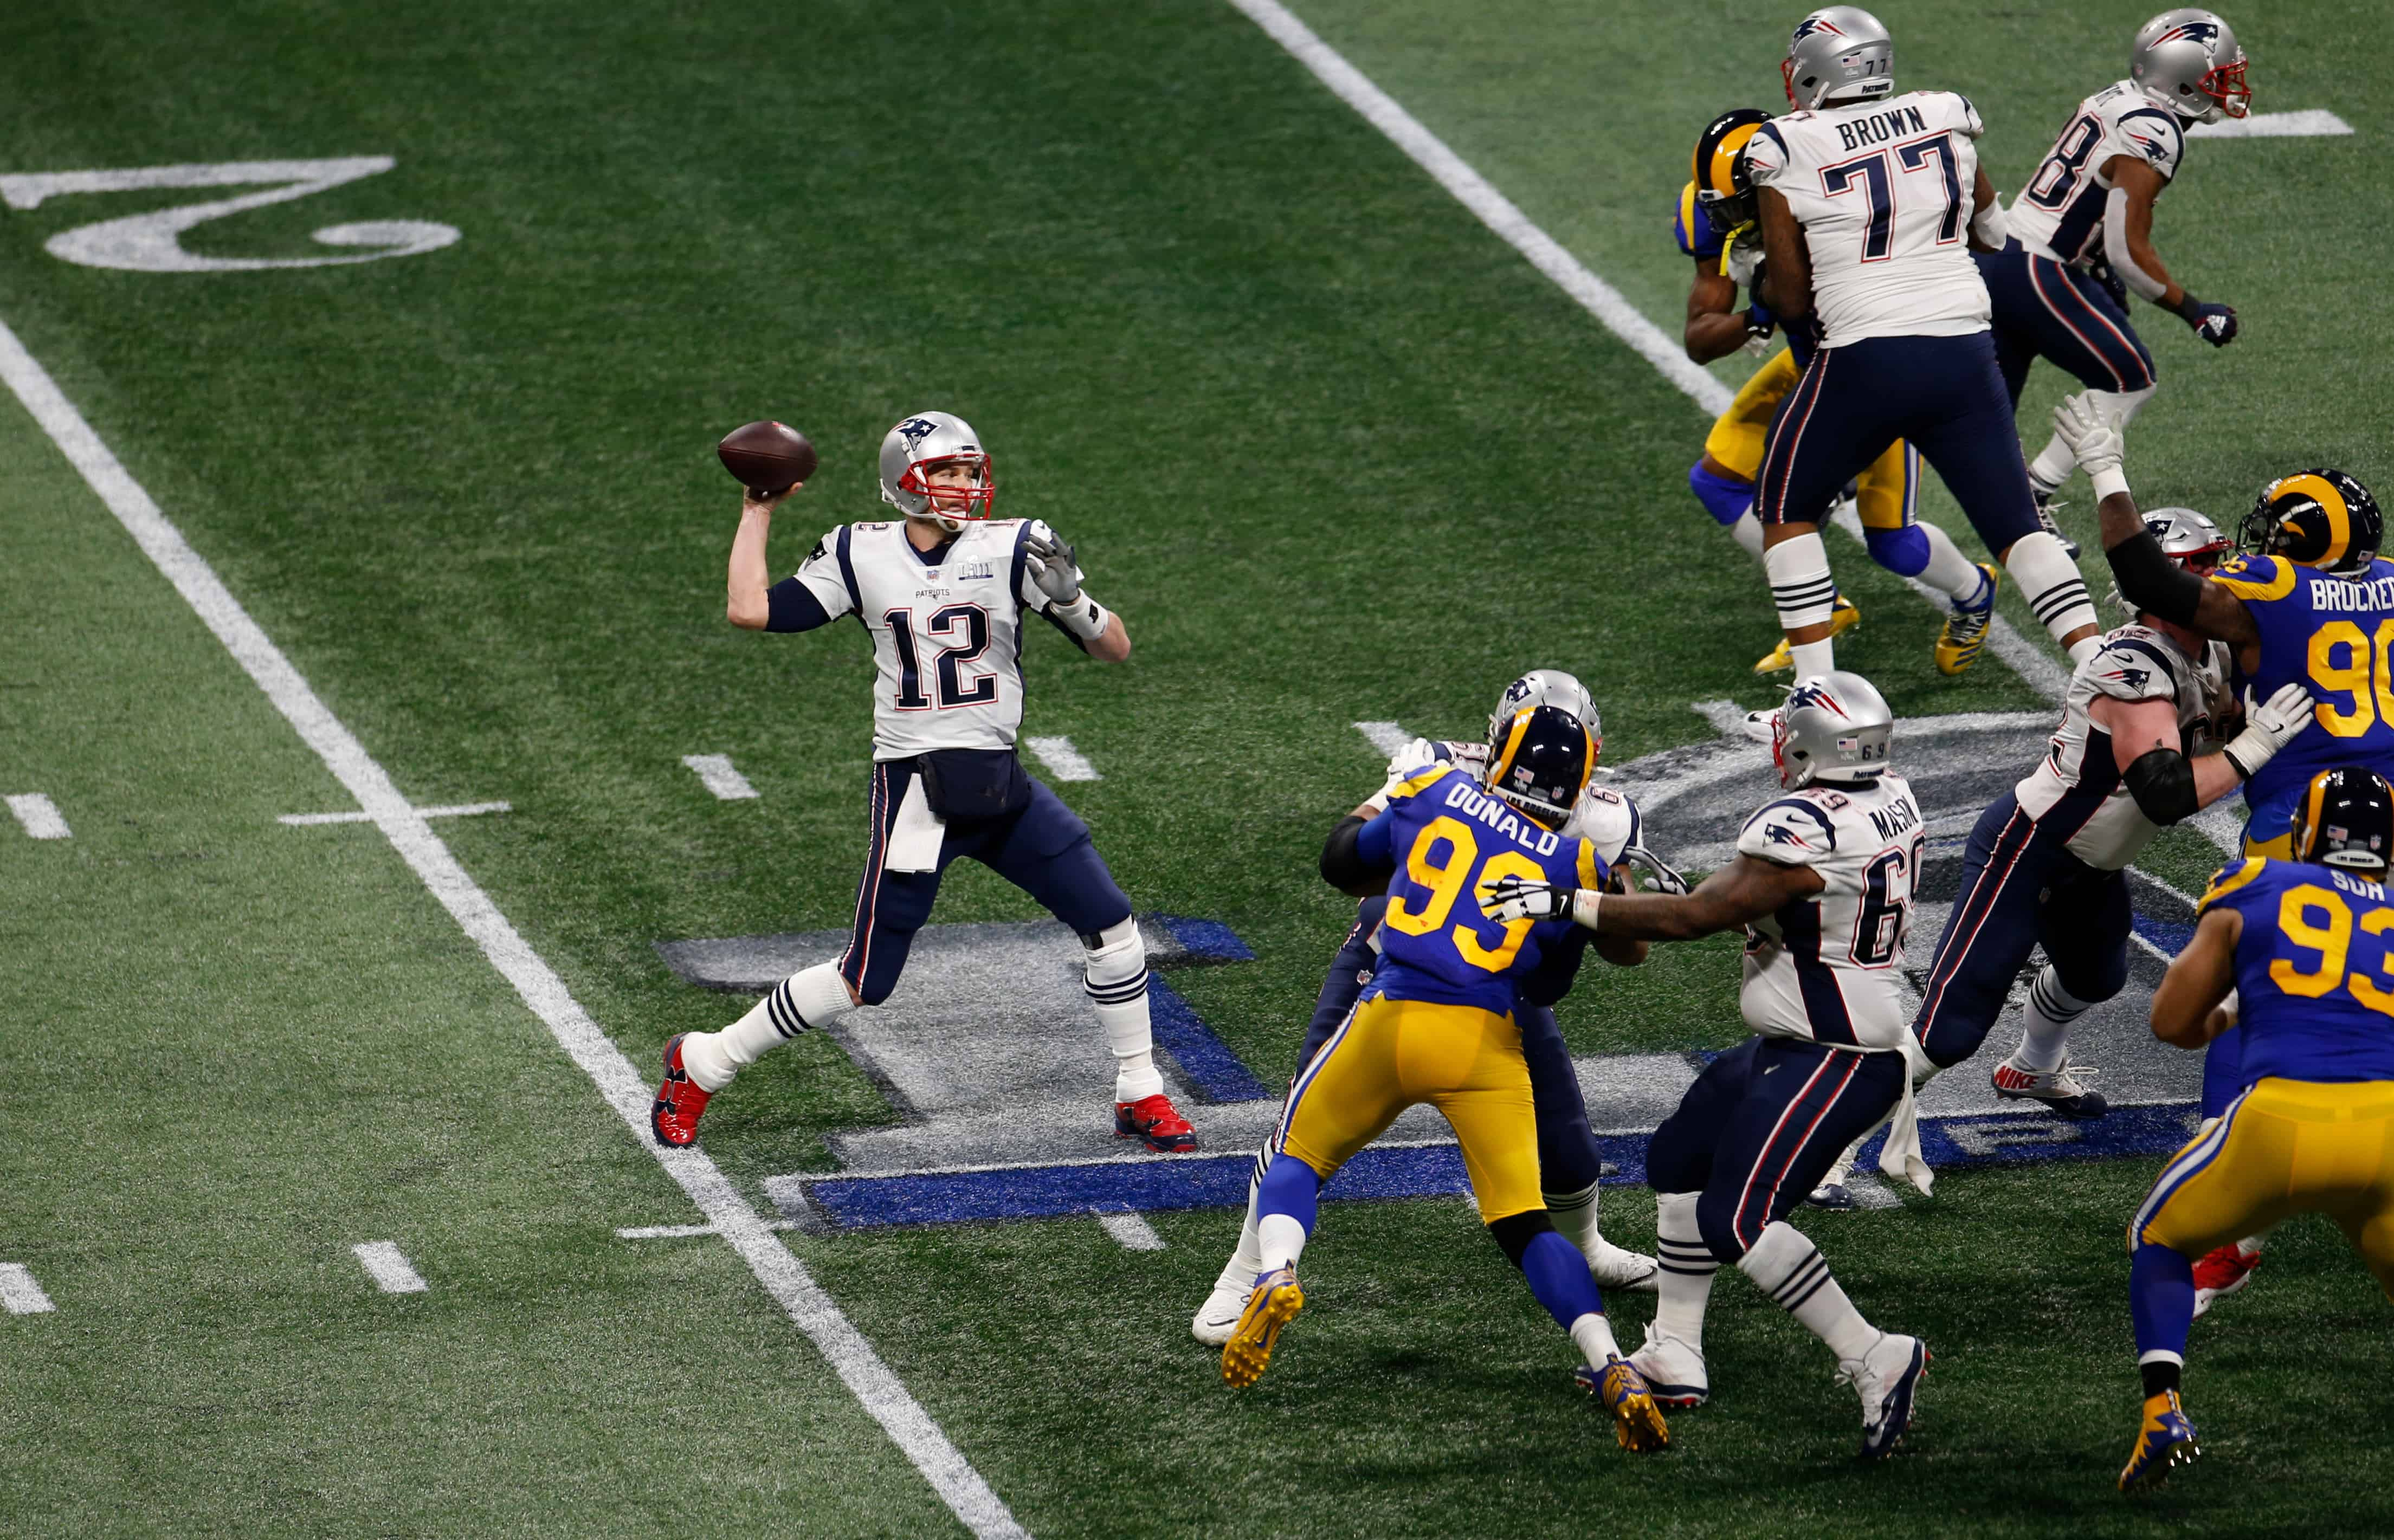 Tom Brady throws pass in Super Bowl